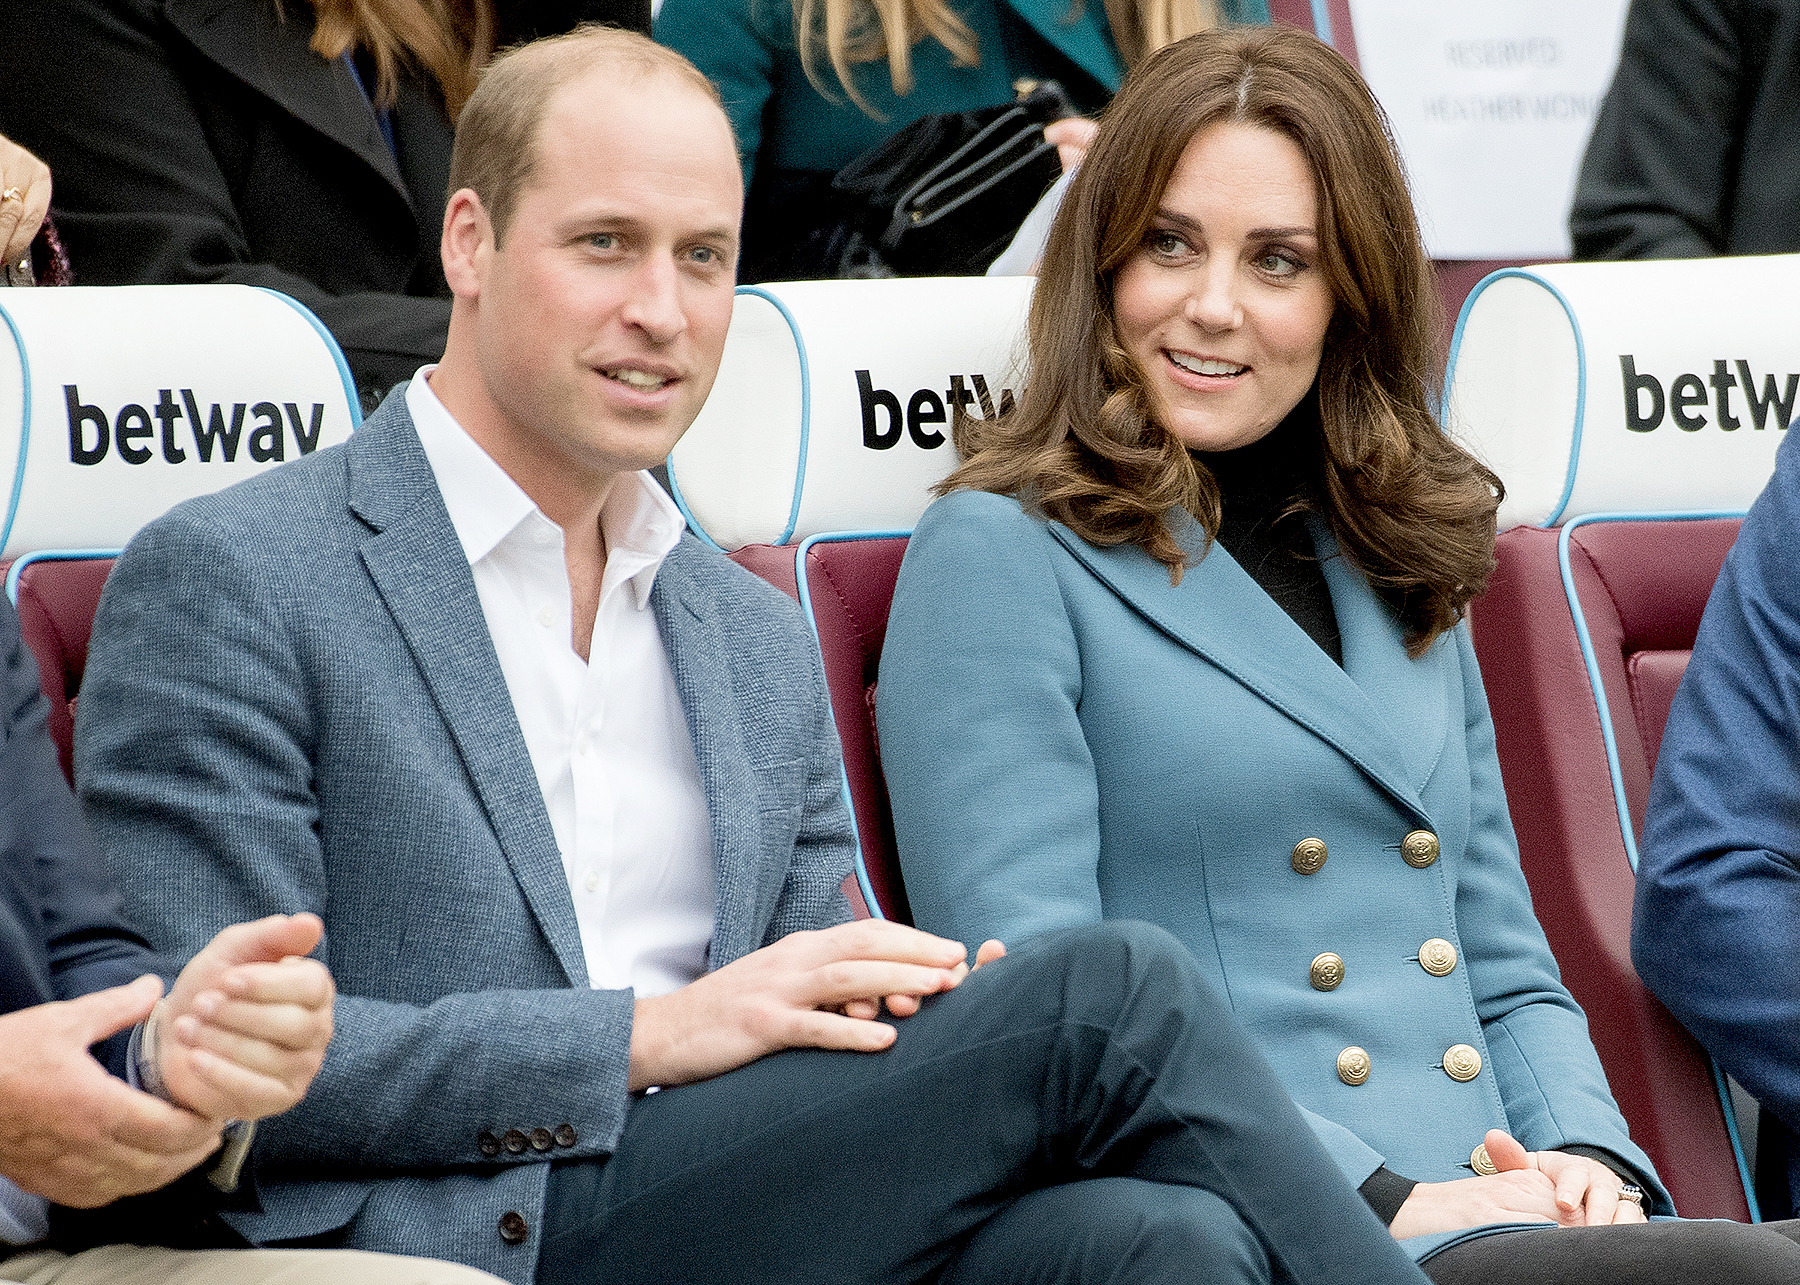 William and Kate expect baby in April: Kensington Palace